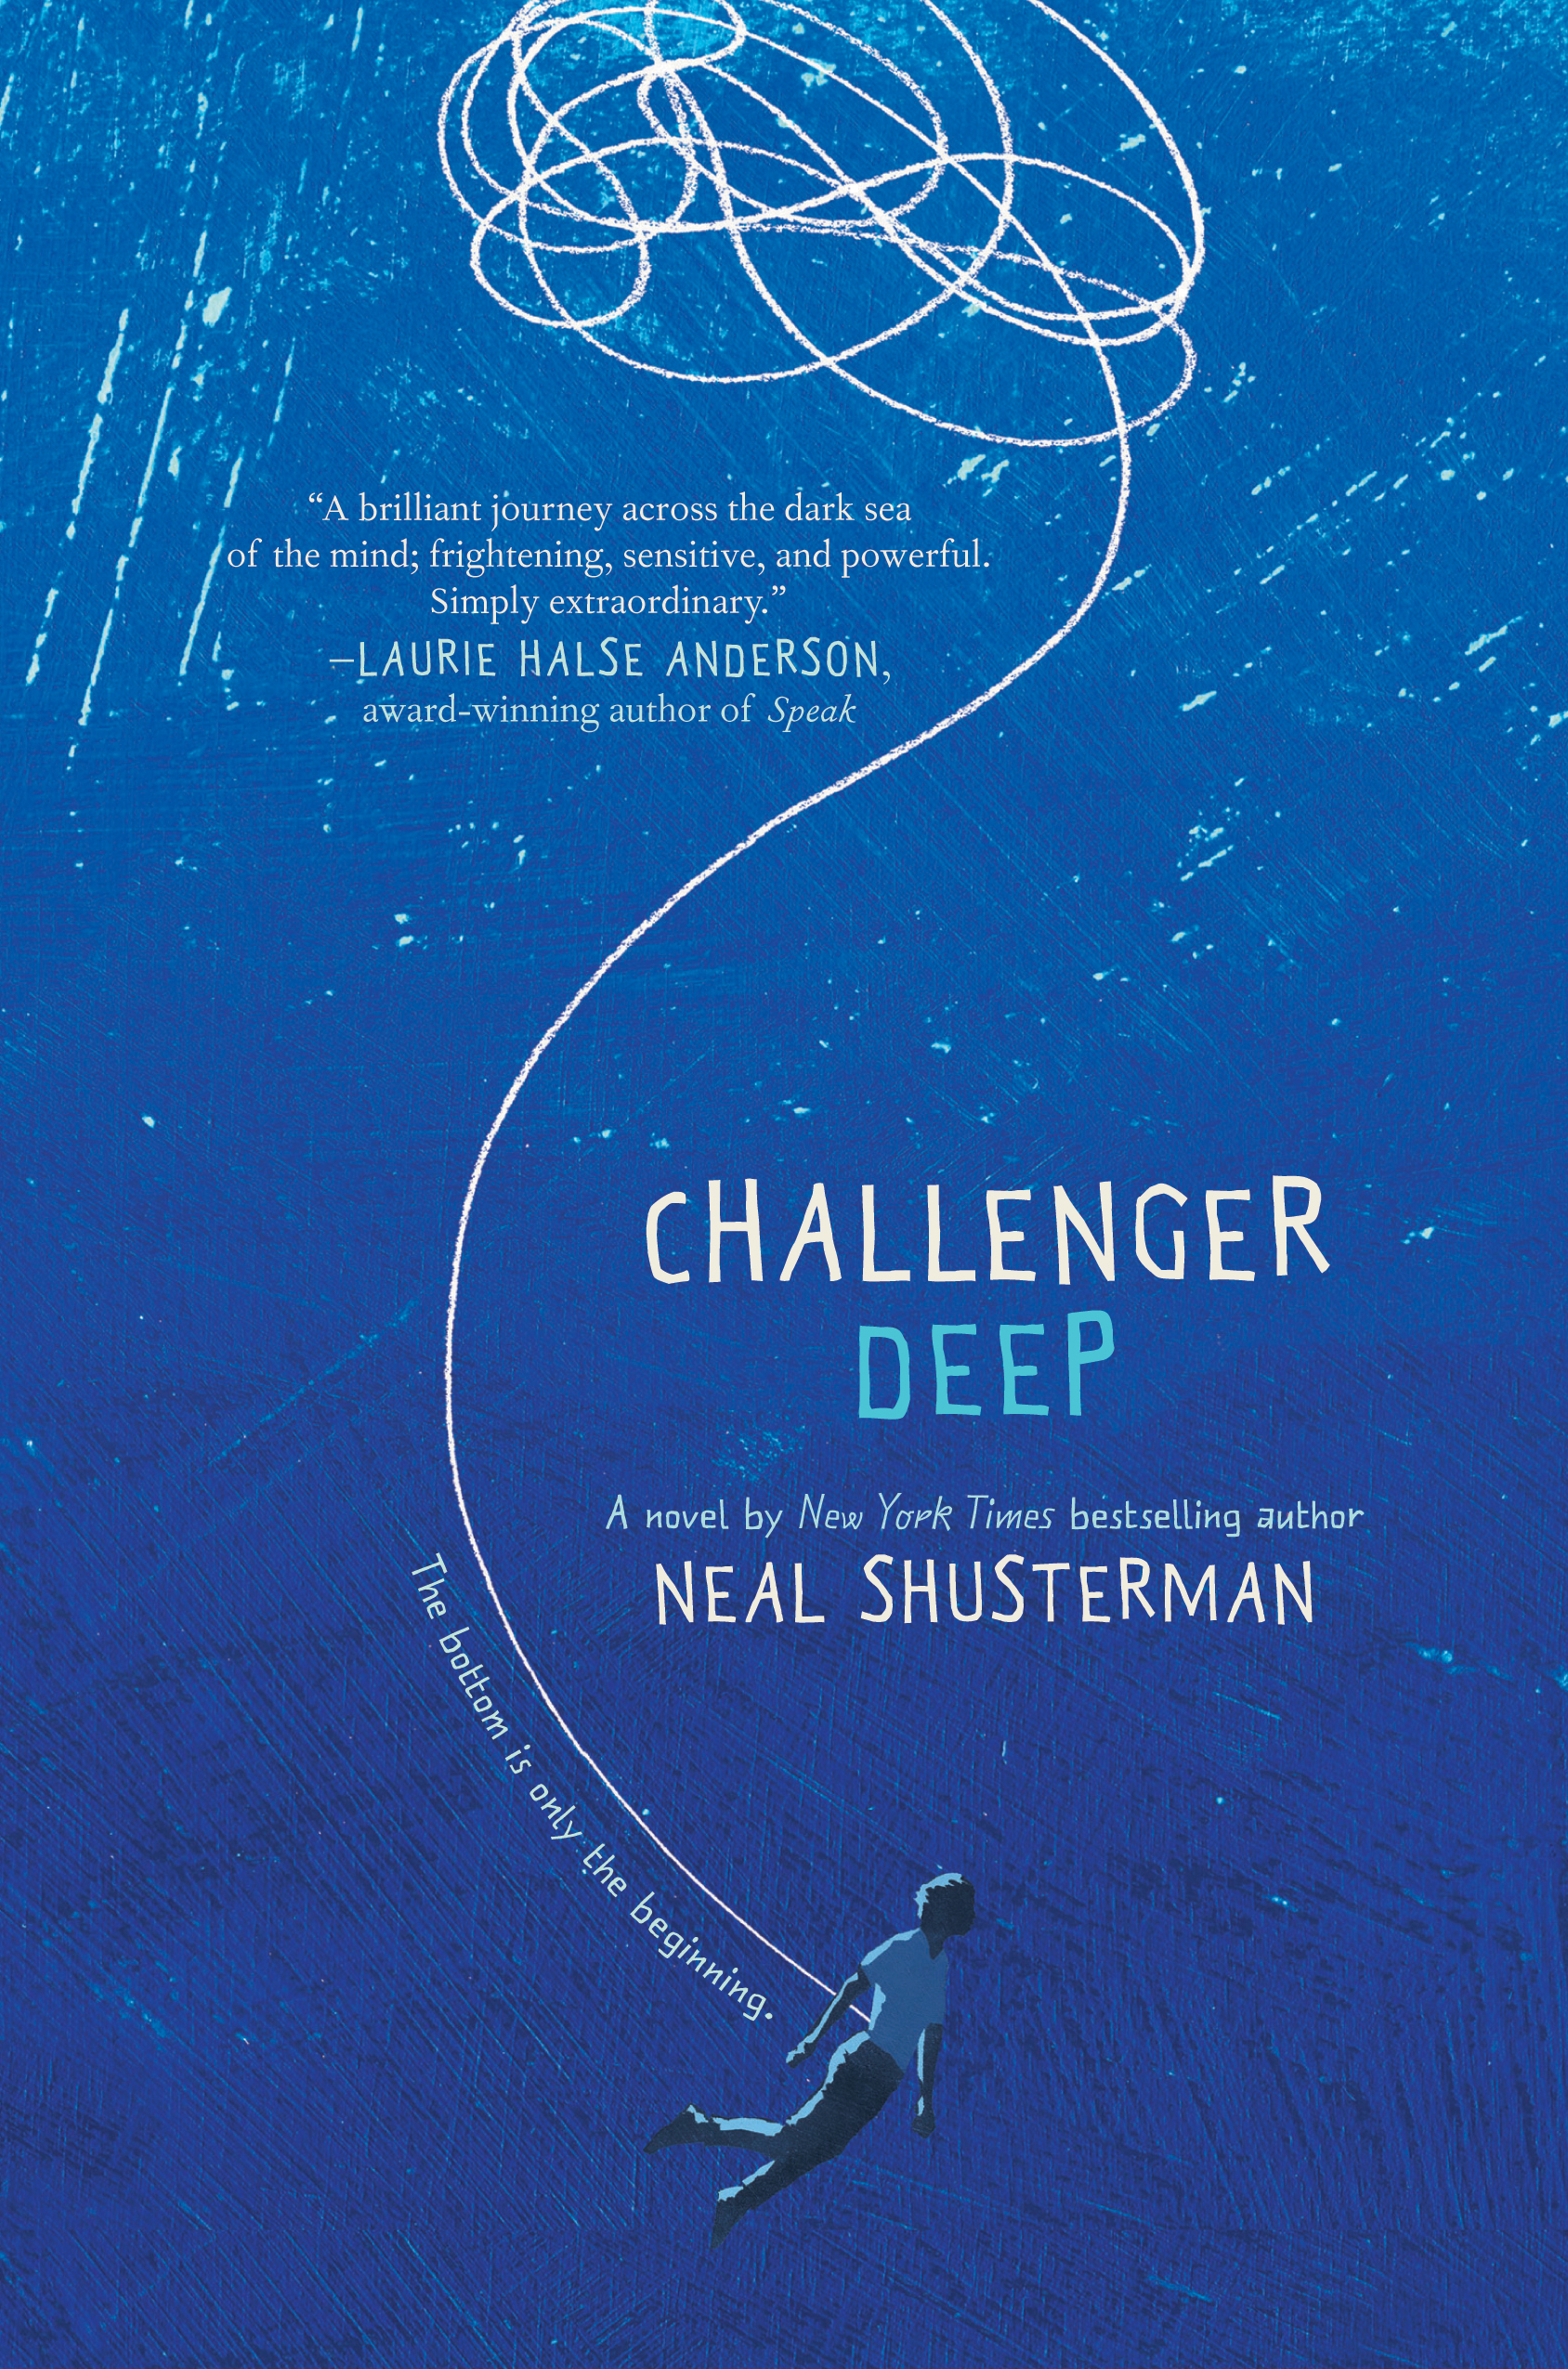 Challenger Deep by Neal Shusterman -  The 29 Best YA Book Covers of 2015 as Chosen by Epic Reads Designers